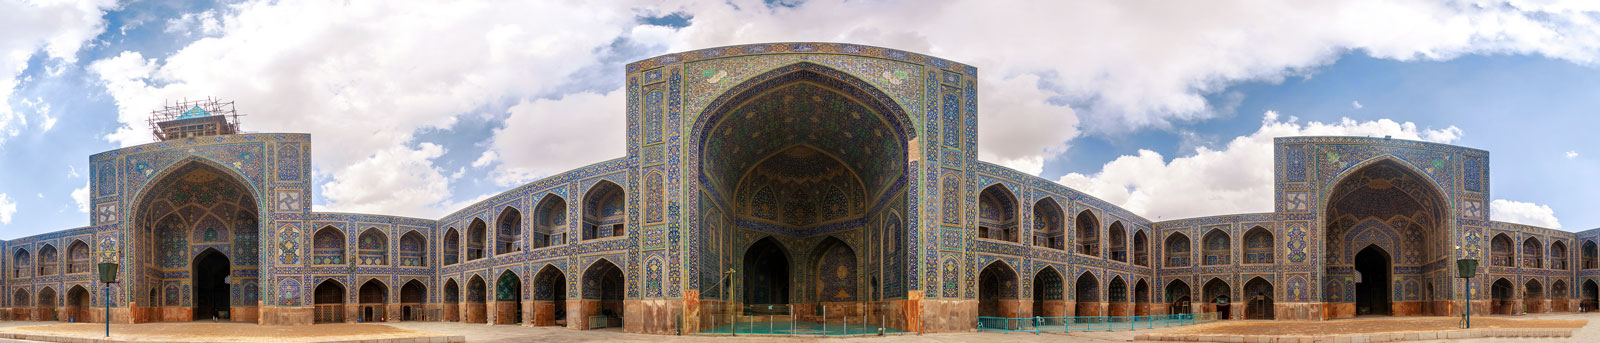 Imam-Mosque--Isfahan